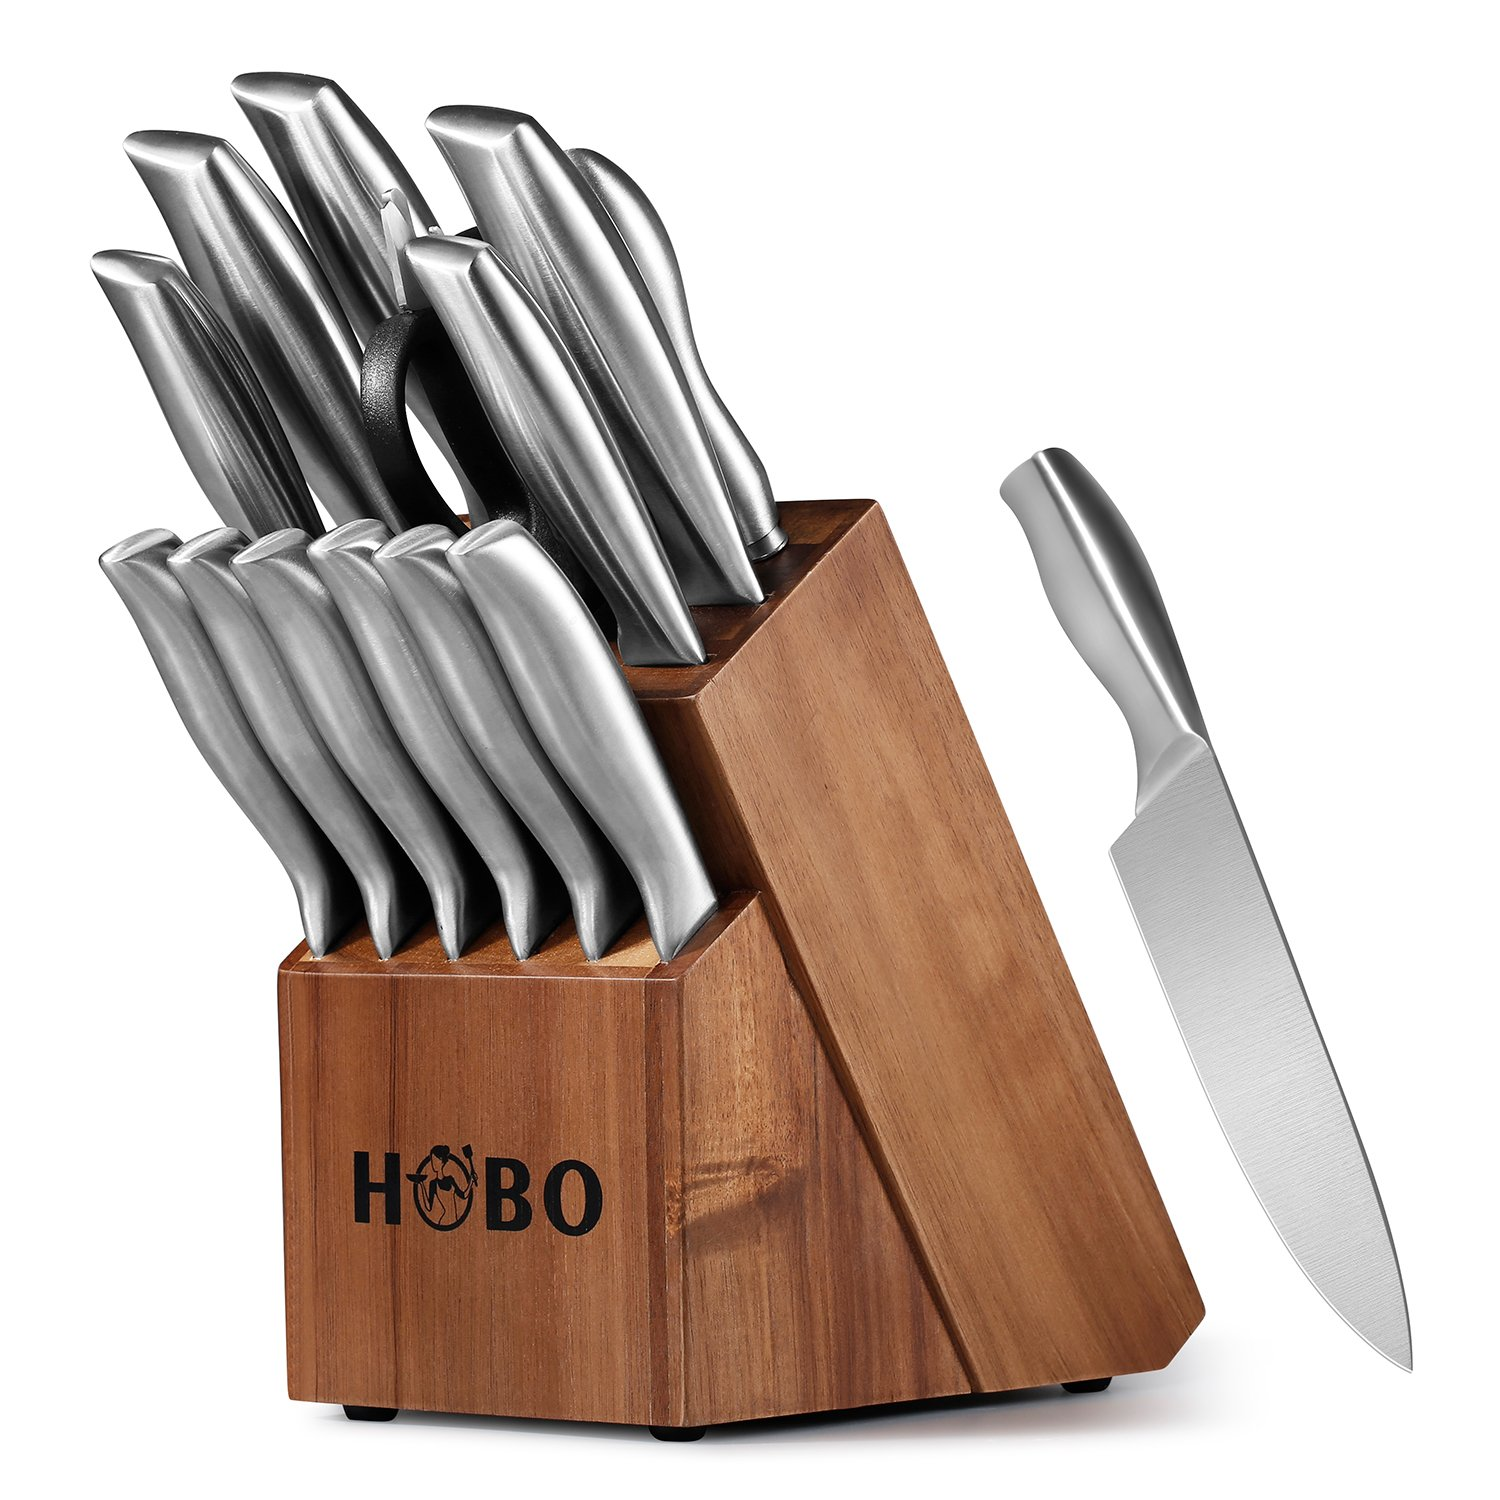 Details about Knife Set, HOBO 14-Piece Kitchen Knife Set with Block Wooden,  Self Sharpening